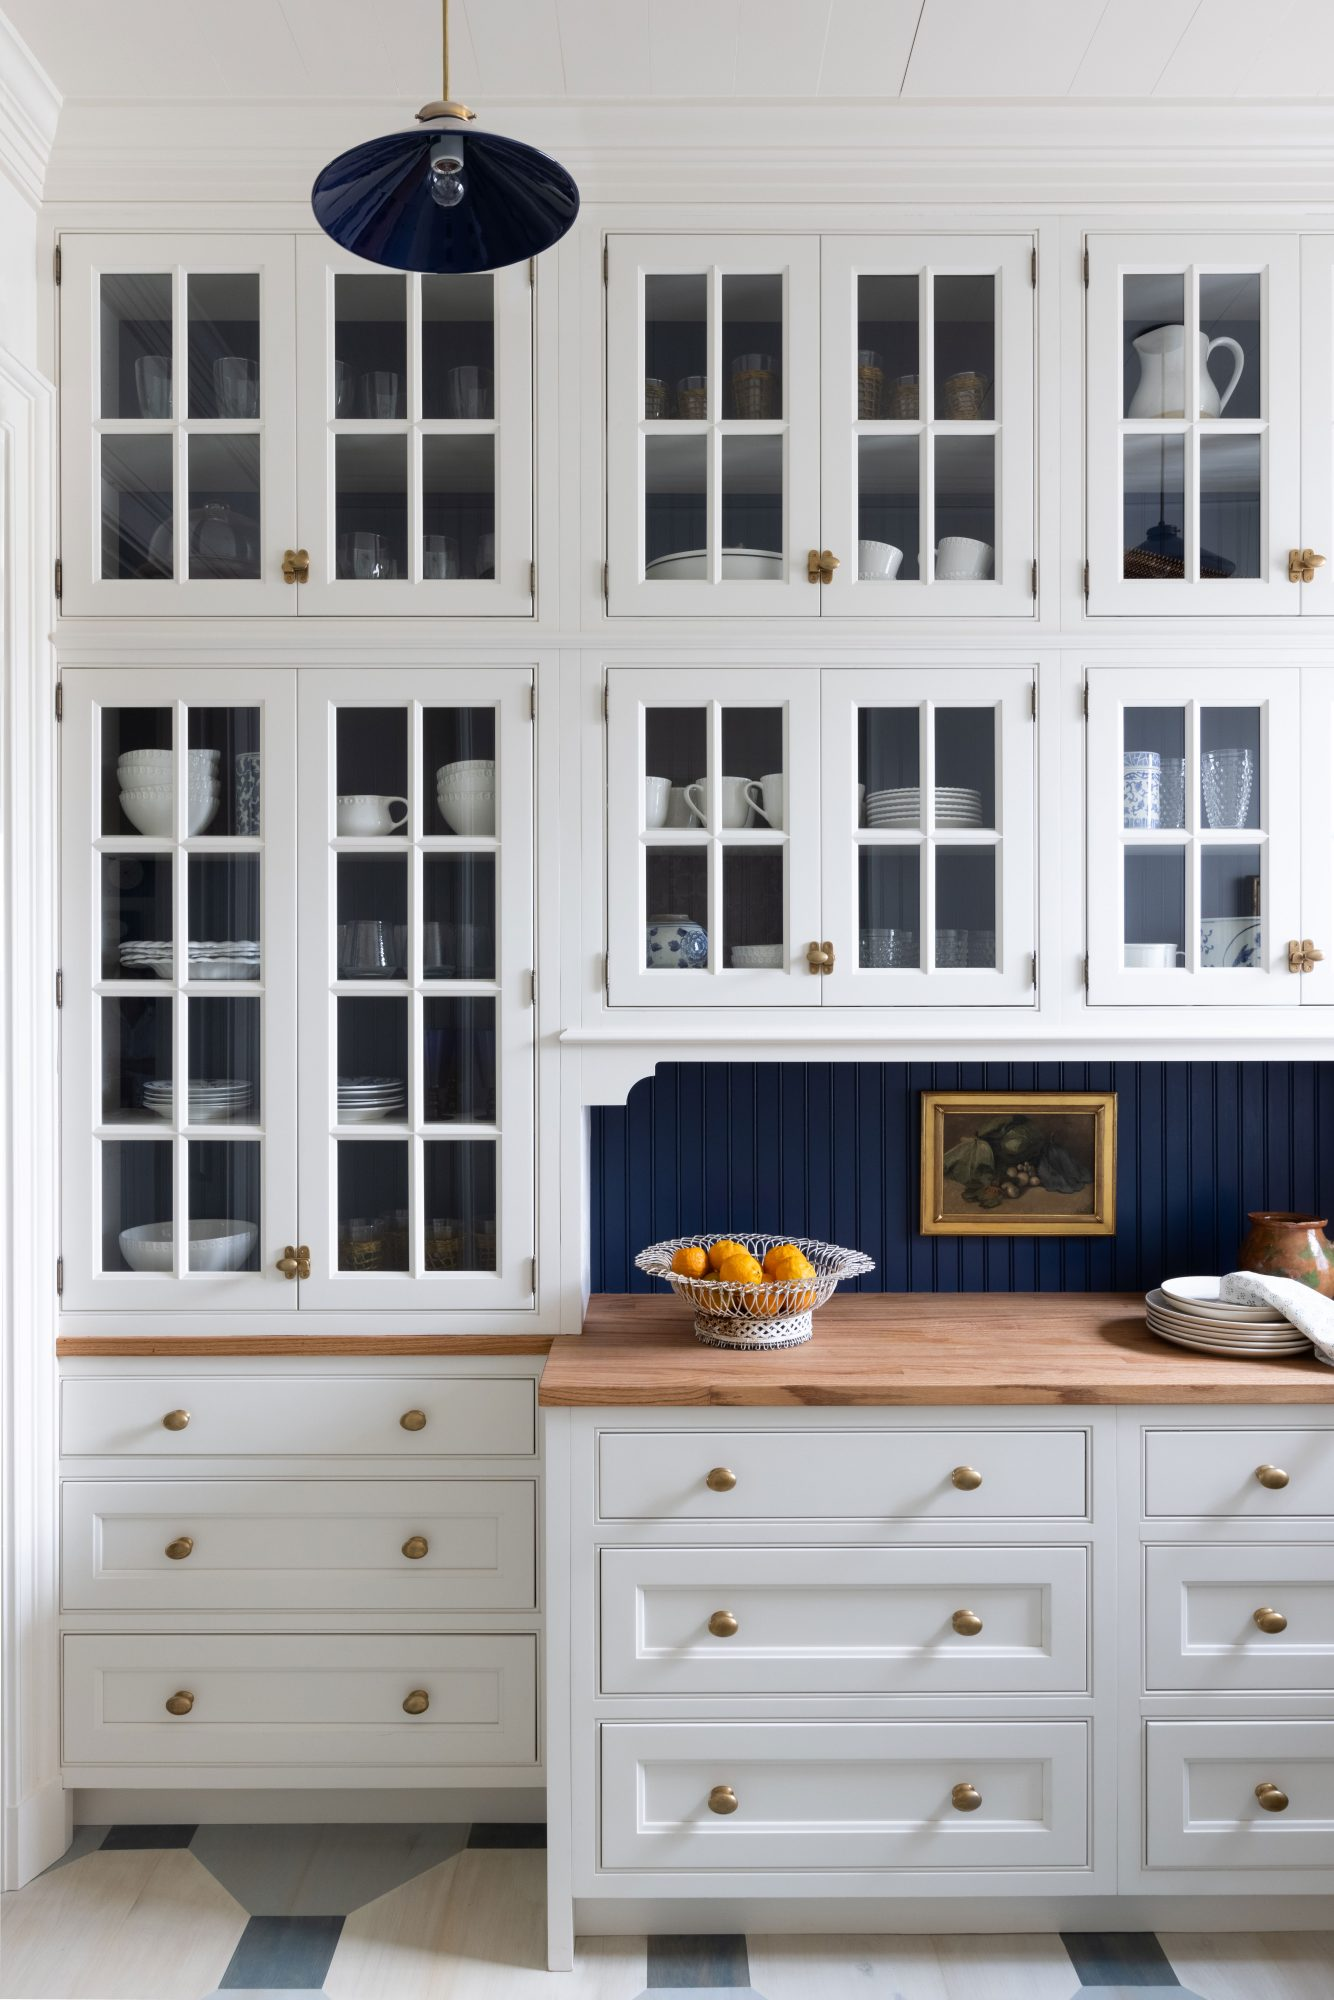 2021 Idea House Scullery Storage